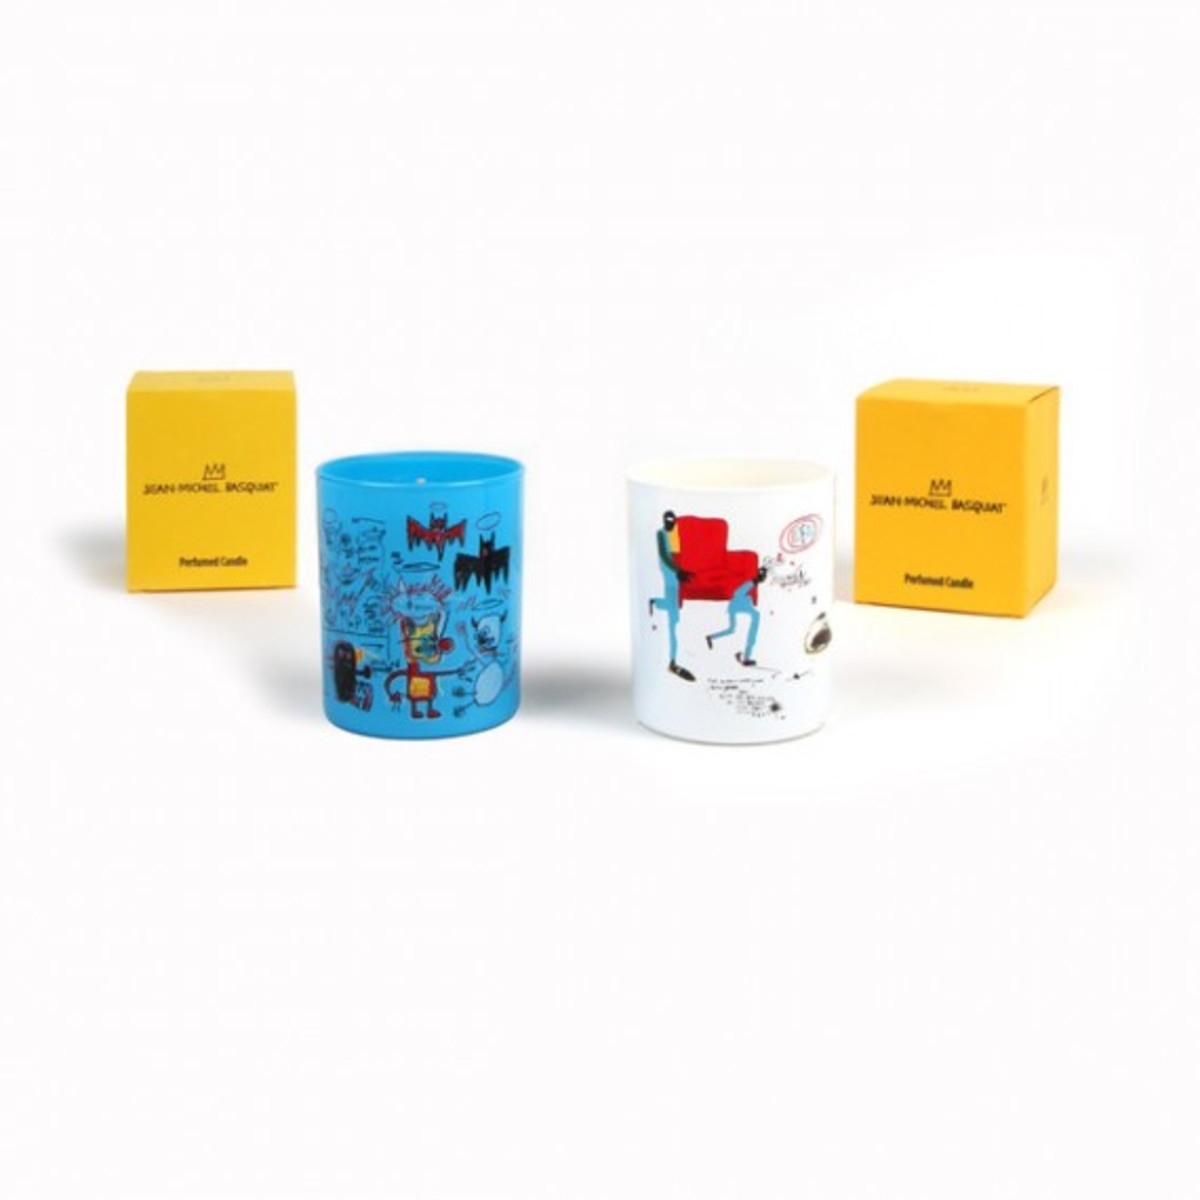 ligne-blanche-jean-michel-basquiat-perfumed-candle-02